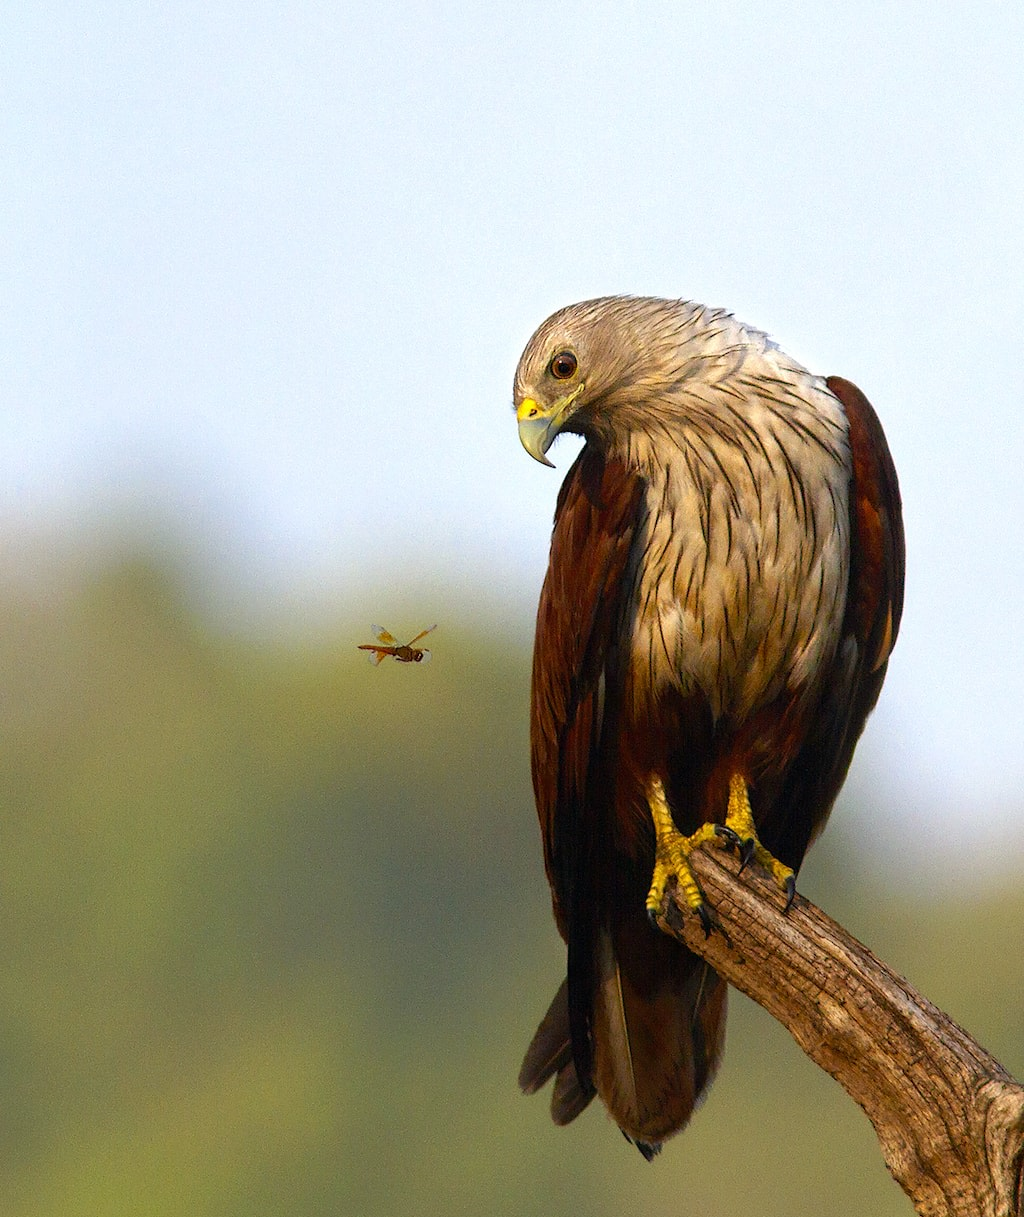 Brahminy kites (Haliastur indus), with conspicuous chestnut wings, are a common, striking presence near waterbodies, flooded areas, and even inundated agricultural fields. They are widespread residents around coastal fishing villages but are also found inland through peninsular, central, and northeast India. Their diverse diet includes small fish (caught on the water's surface), frogs, crabs, lizards, snakes, insects, and birds. Like black kites, they may scavenge near human habitation.